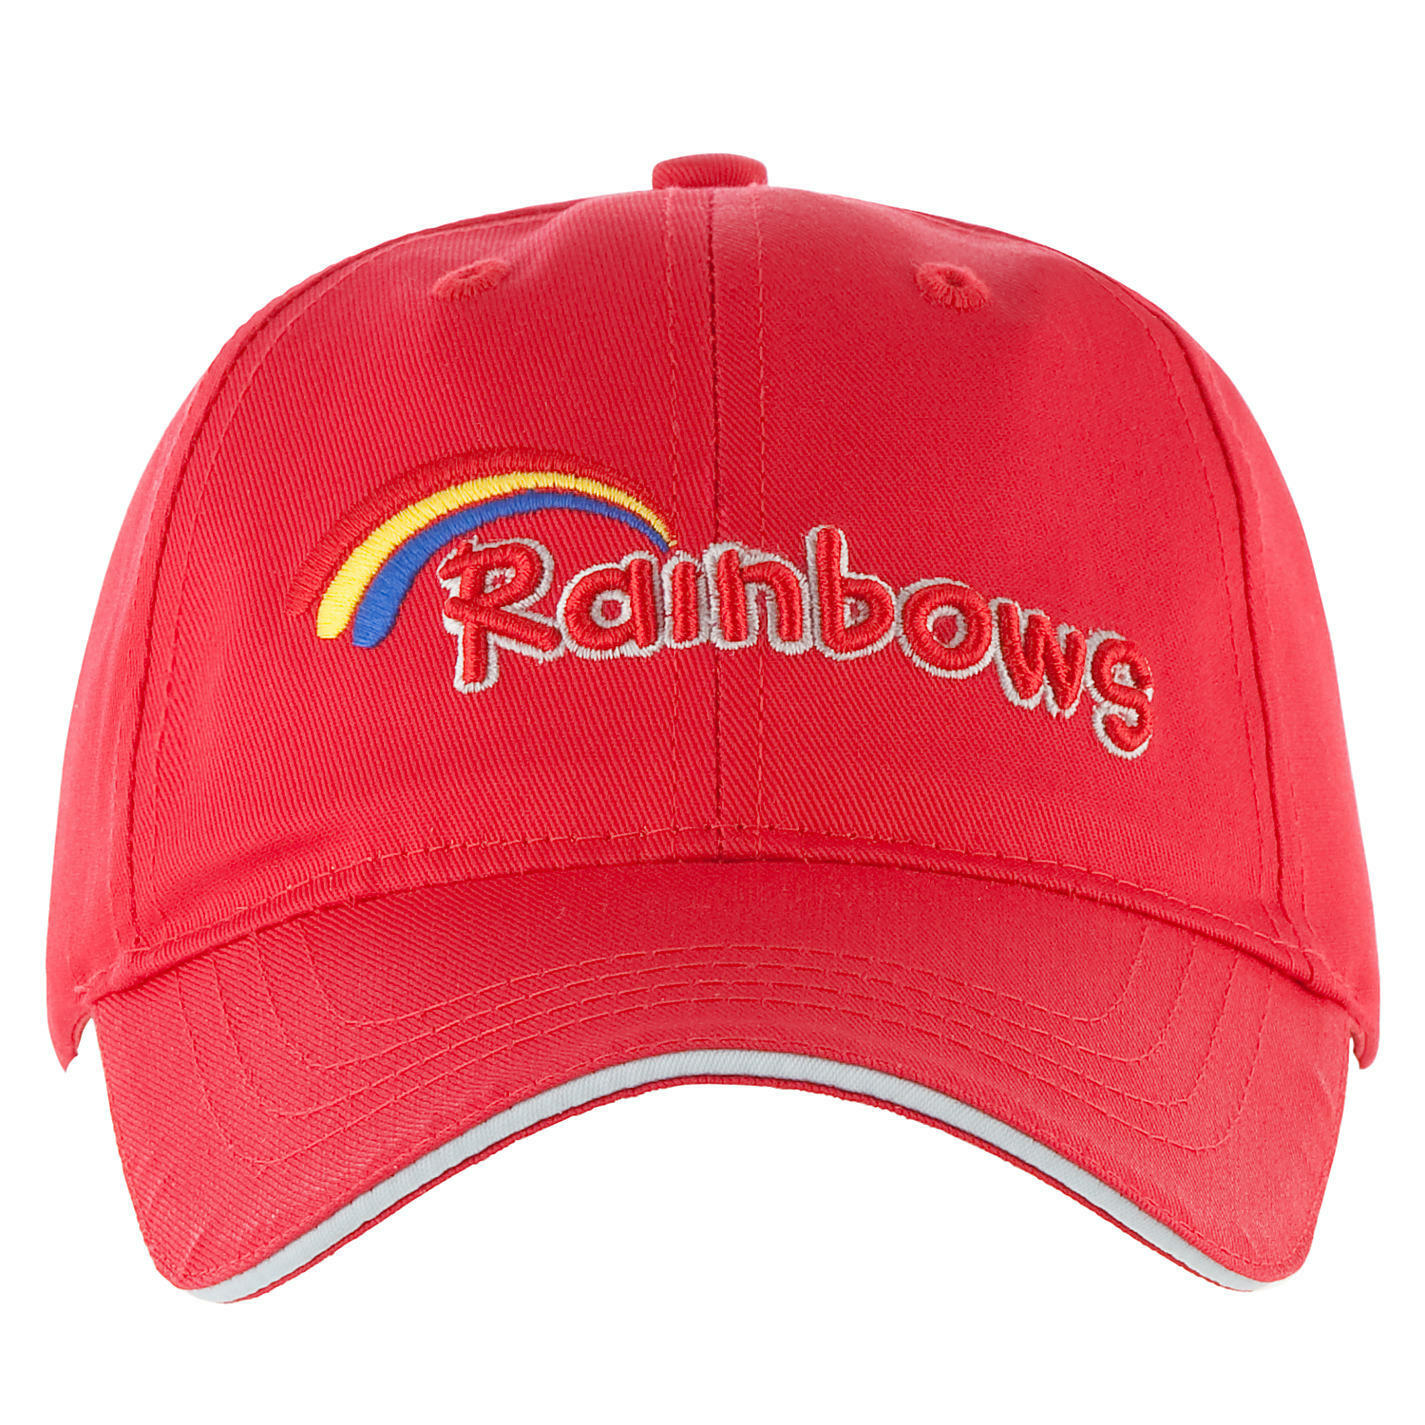 One Size Fits All - 100/% Cotton New Baseball Cap Kids OFFICIAL Rainbow Cap